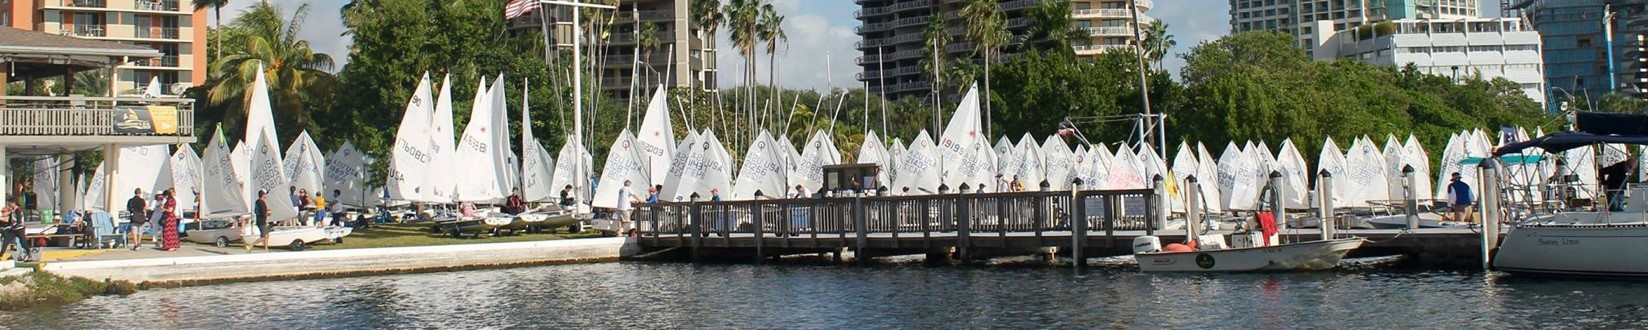 the coconut grove sailing club miami fl will organize its 6th annual halloween howler regatta one of the most sought after fall youth events